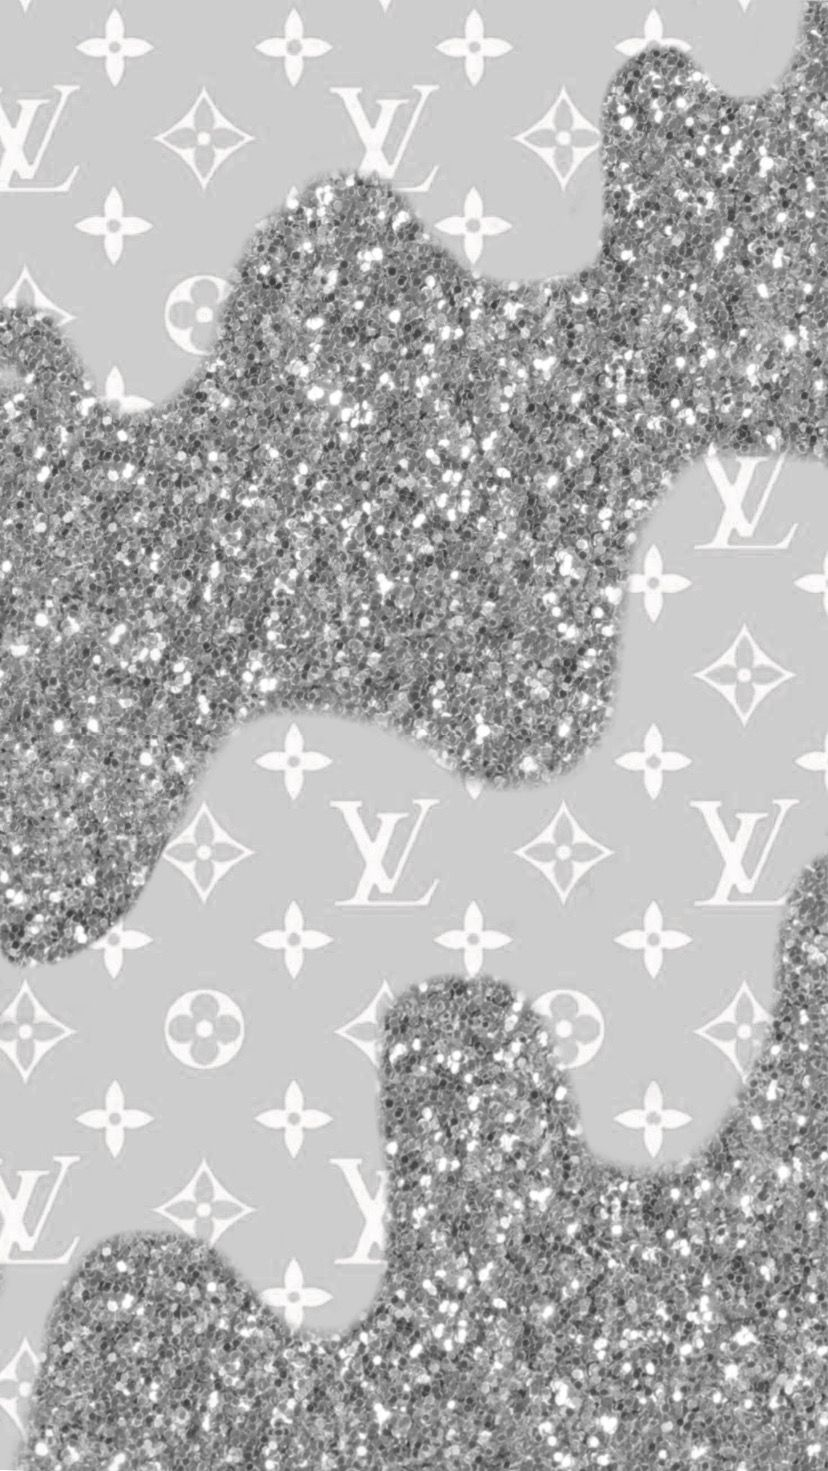 Drippy Louis Vuitton In 2020 Cute Wallpaper Backgrounds Iconic Wallpaper Pretty Wallpapers